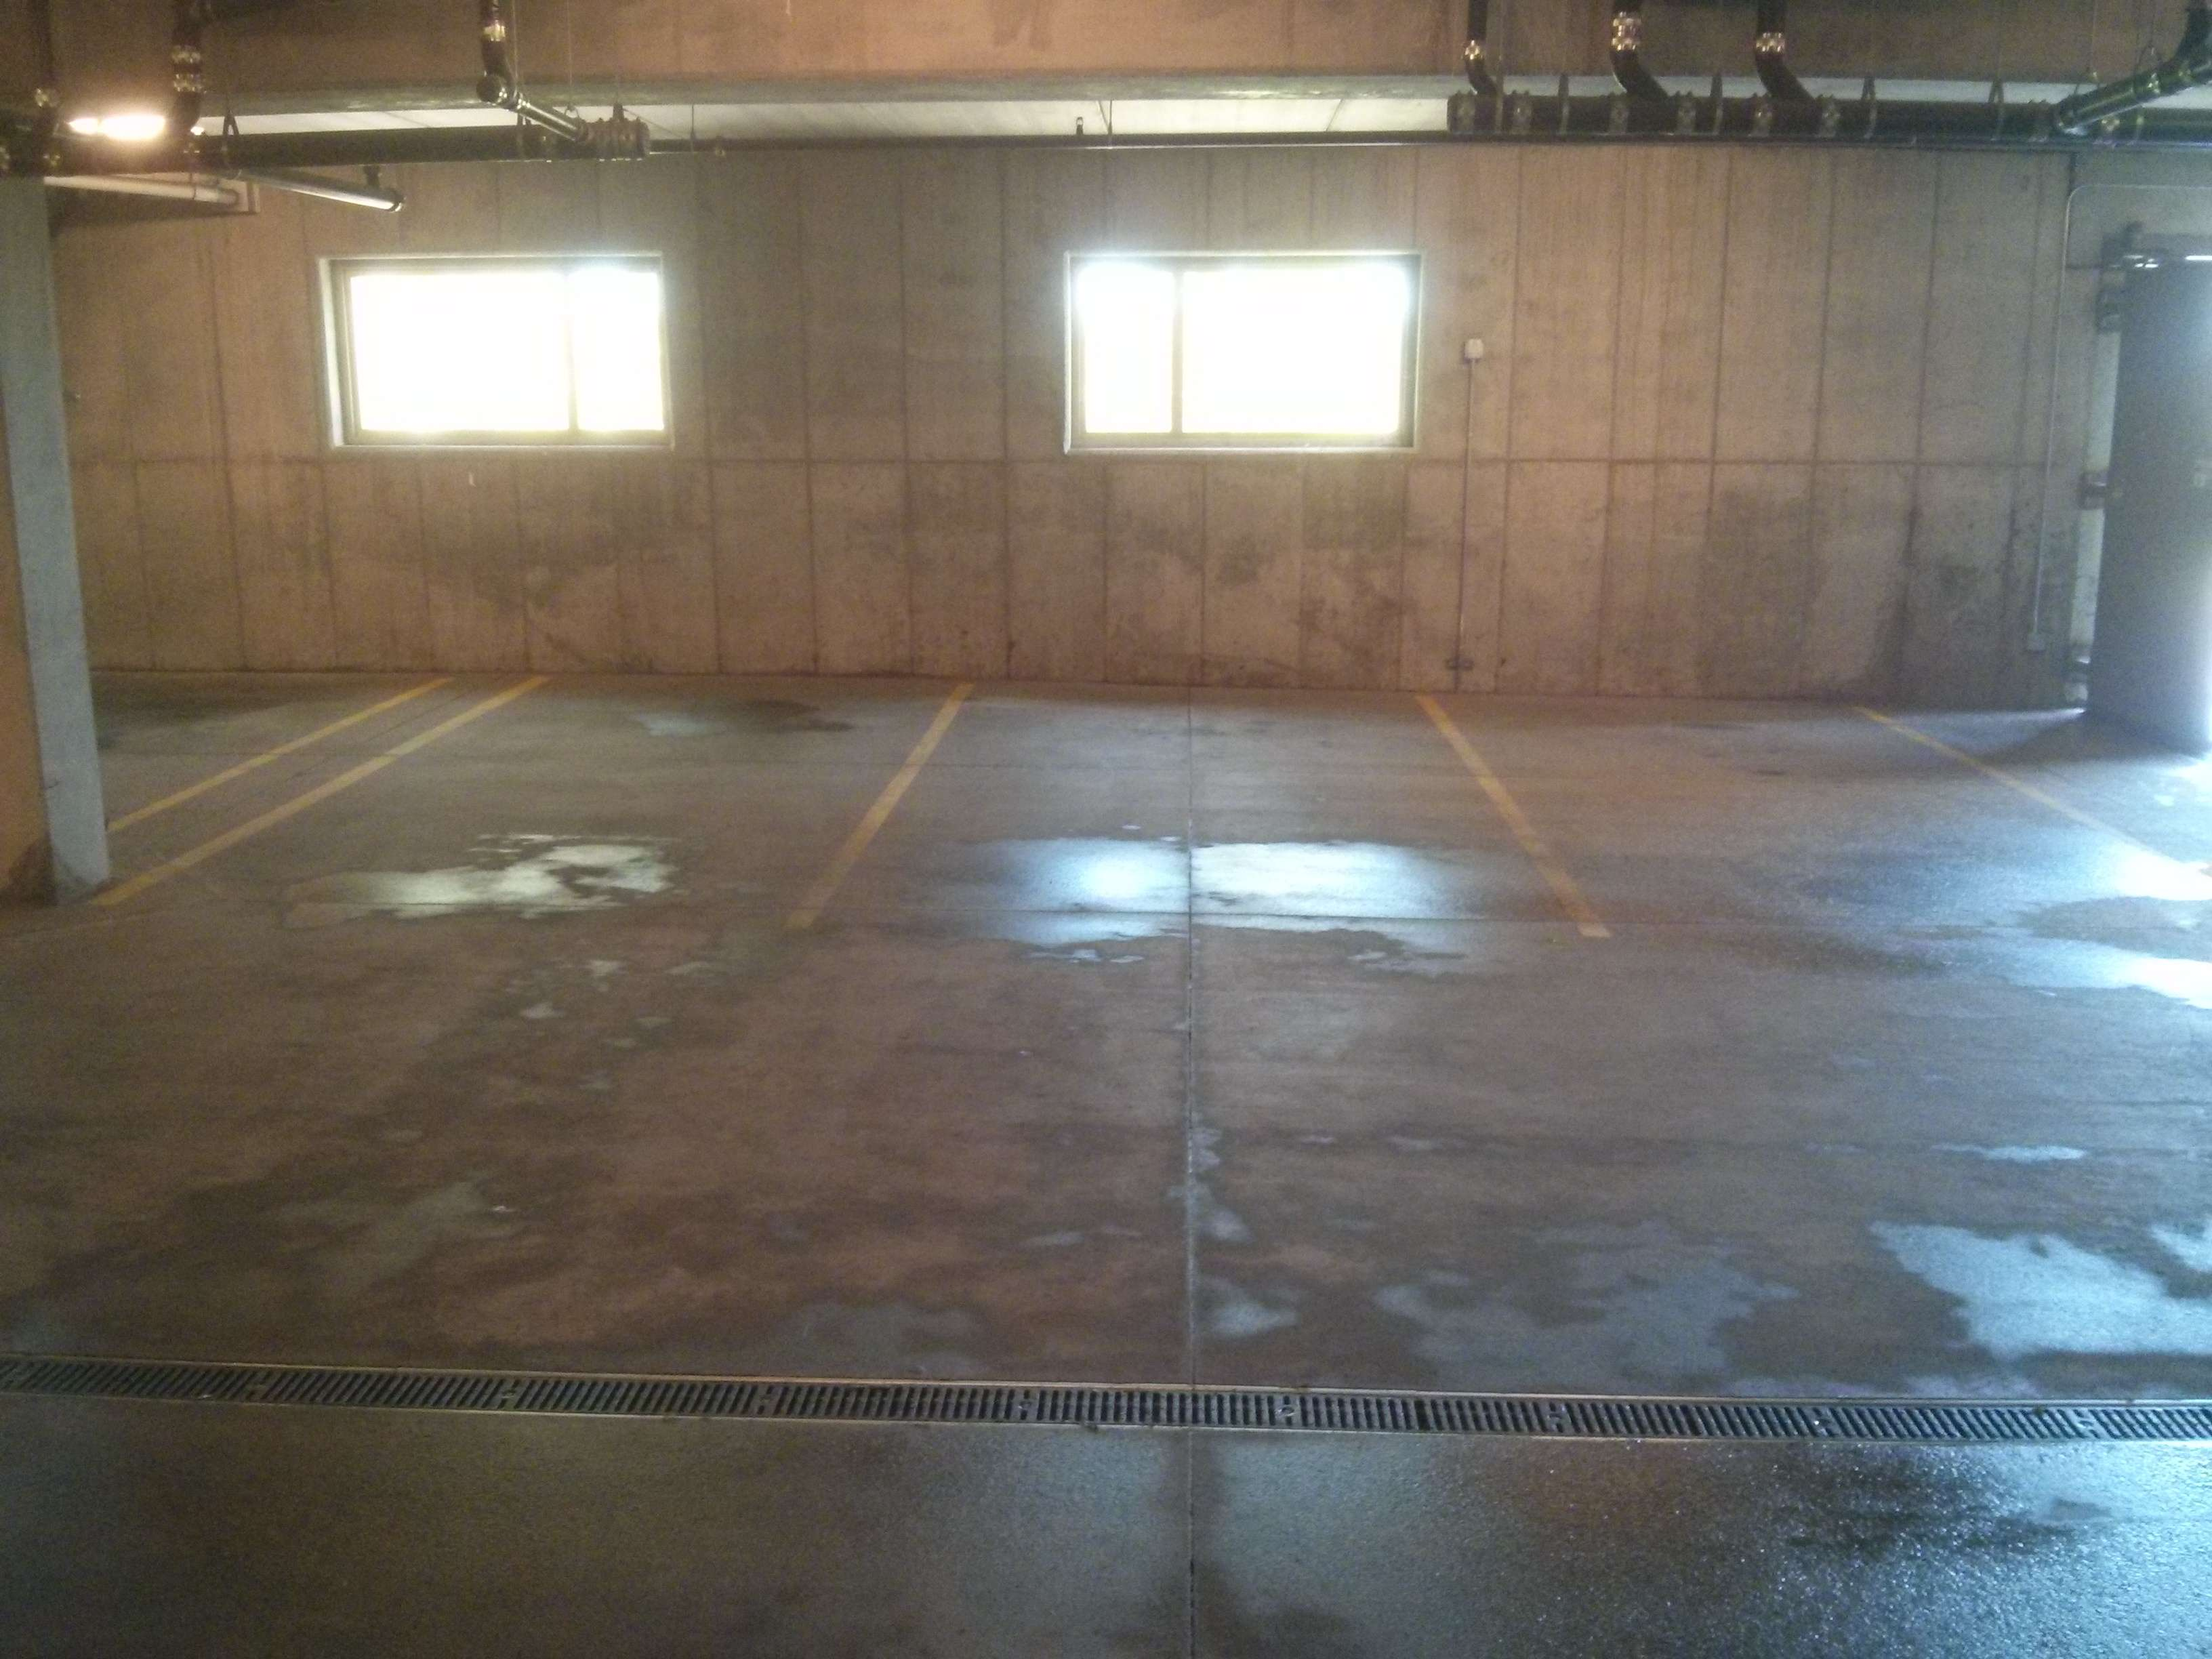 Parking Garage Concrete Floor Pressure Washing, Scrub And Cleaning Services  In Woodbury, MN (